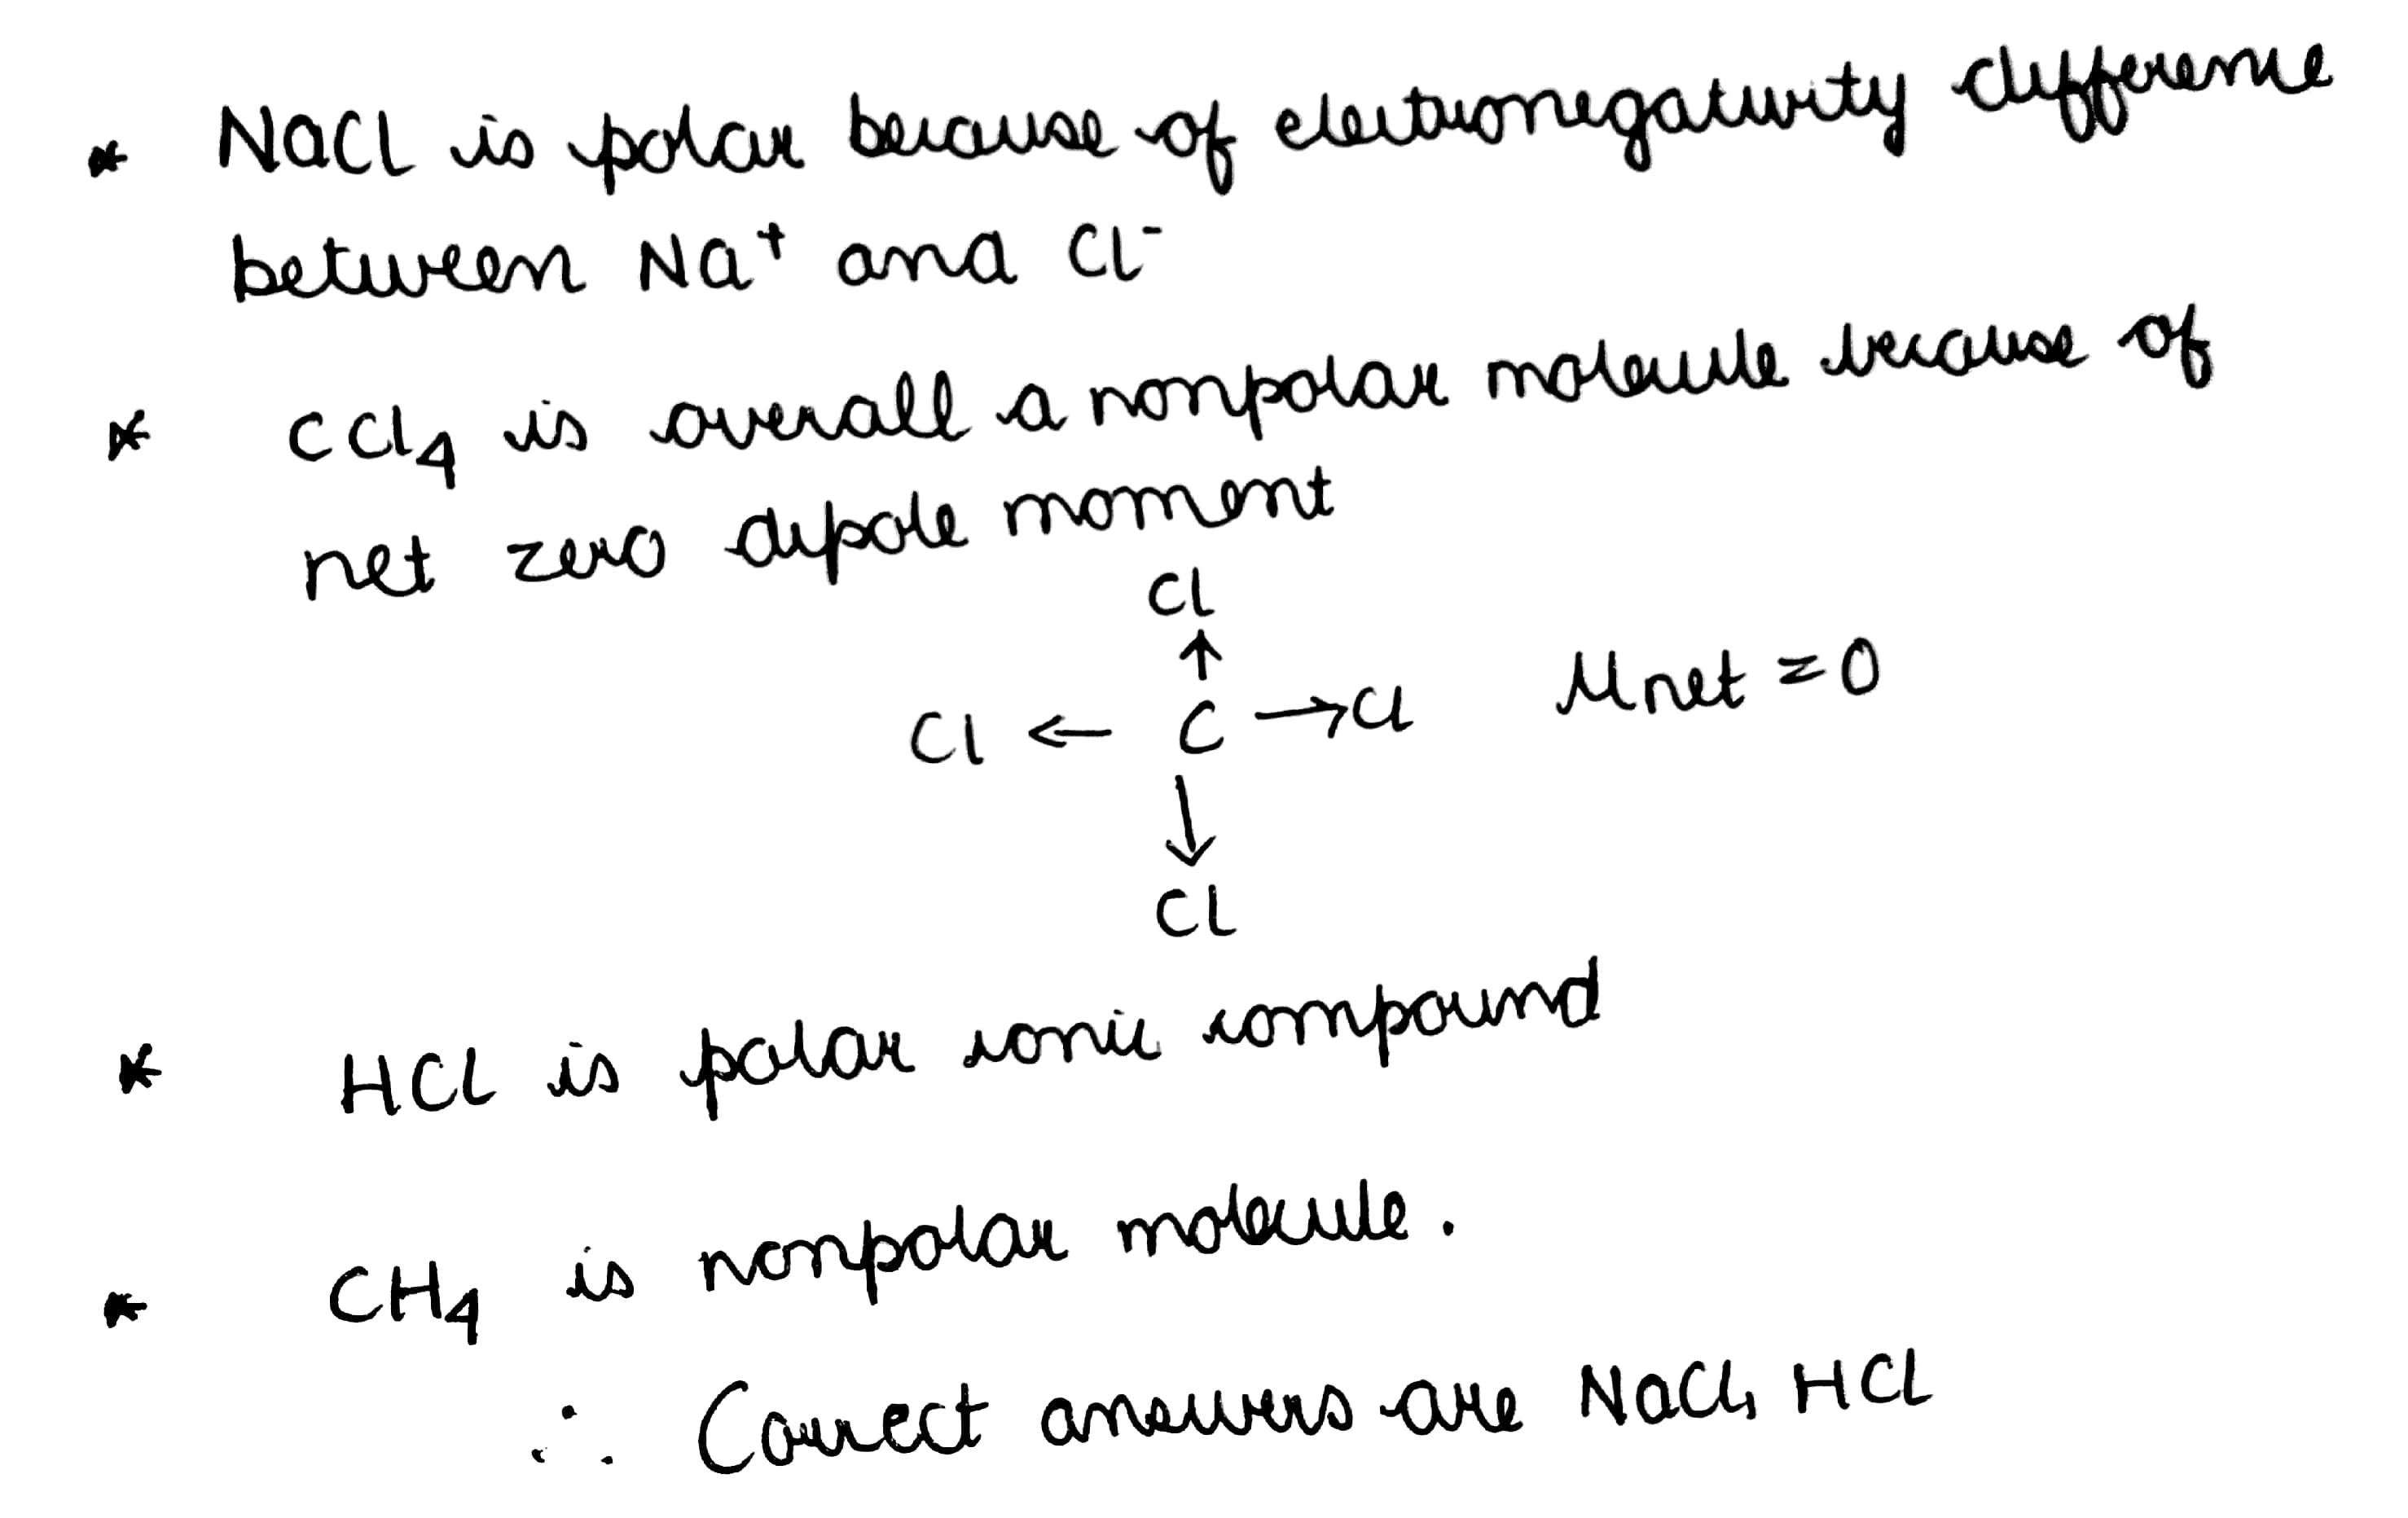 Among The Following Nacl Ccl4 Hcl And Ch4 Which Is A Polar Compounds